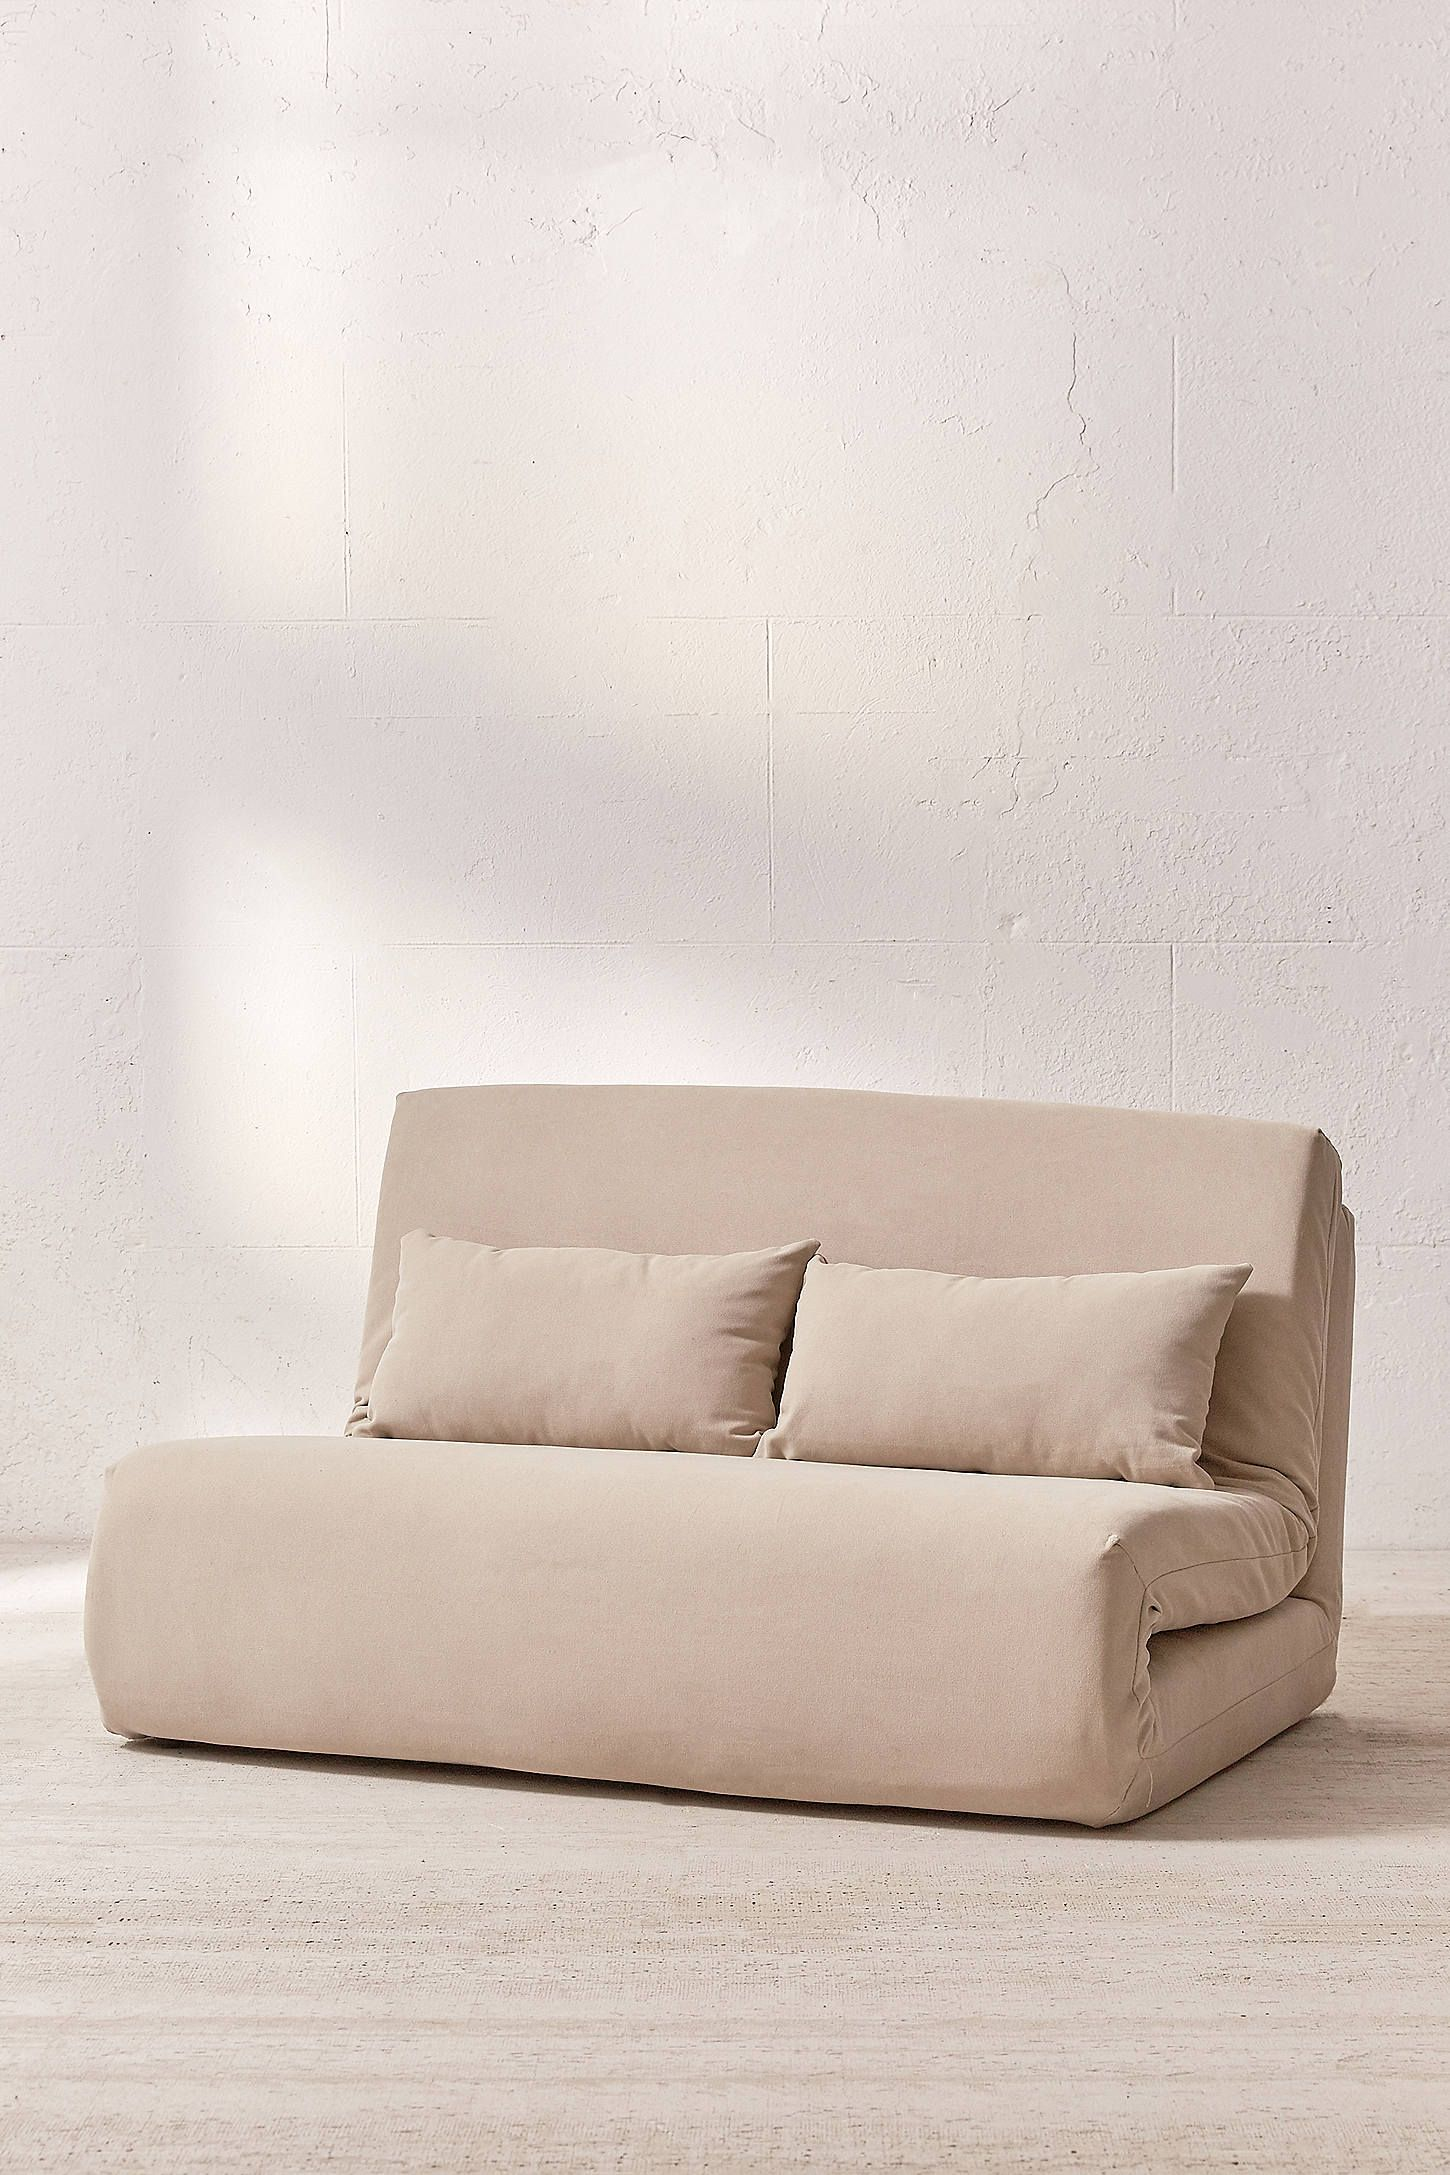 loveseat hlf review fold urban folding shley australia sofa out sleeper outfitters